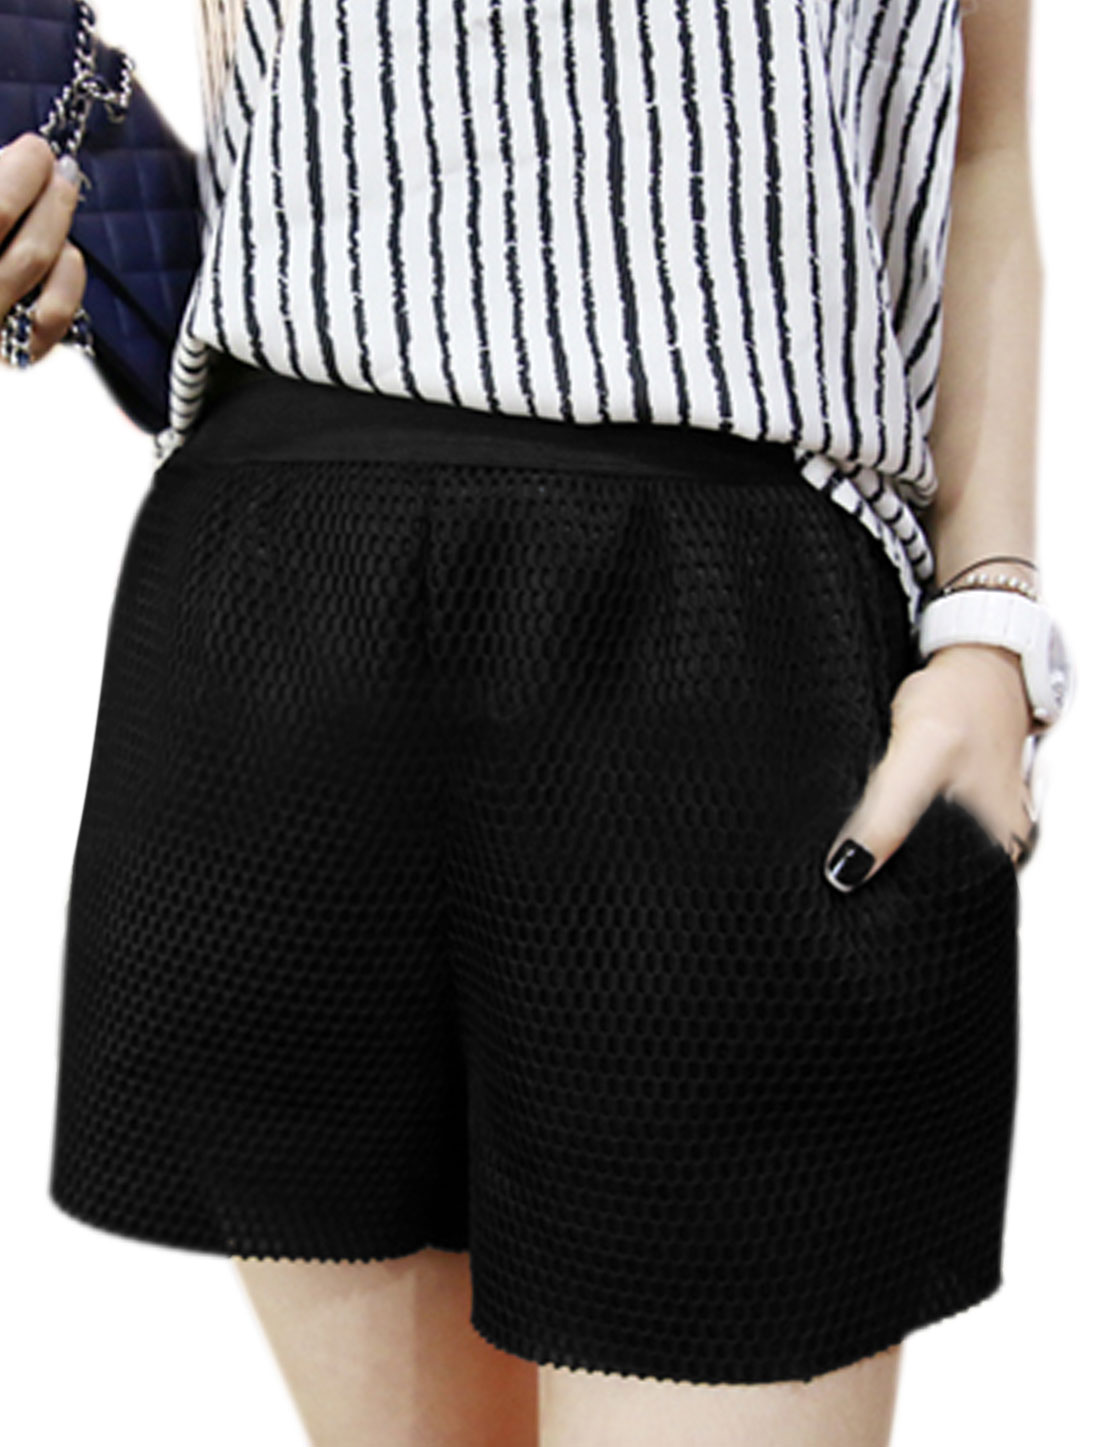 Women Elastic Waist Double Slant Pockets Stylish Net Shorts Black XS